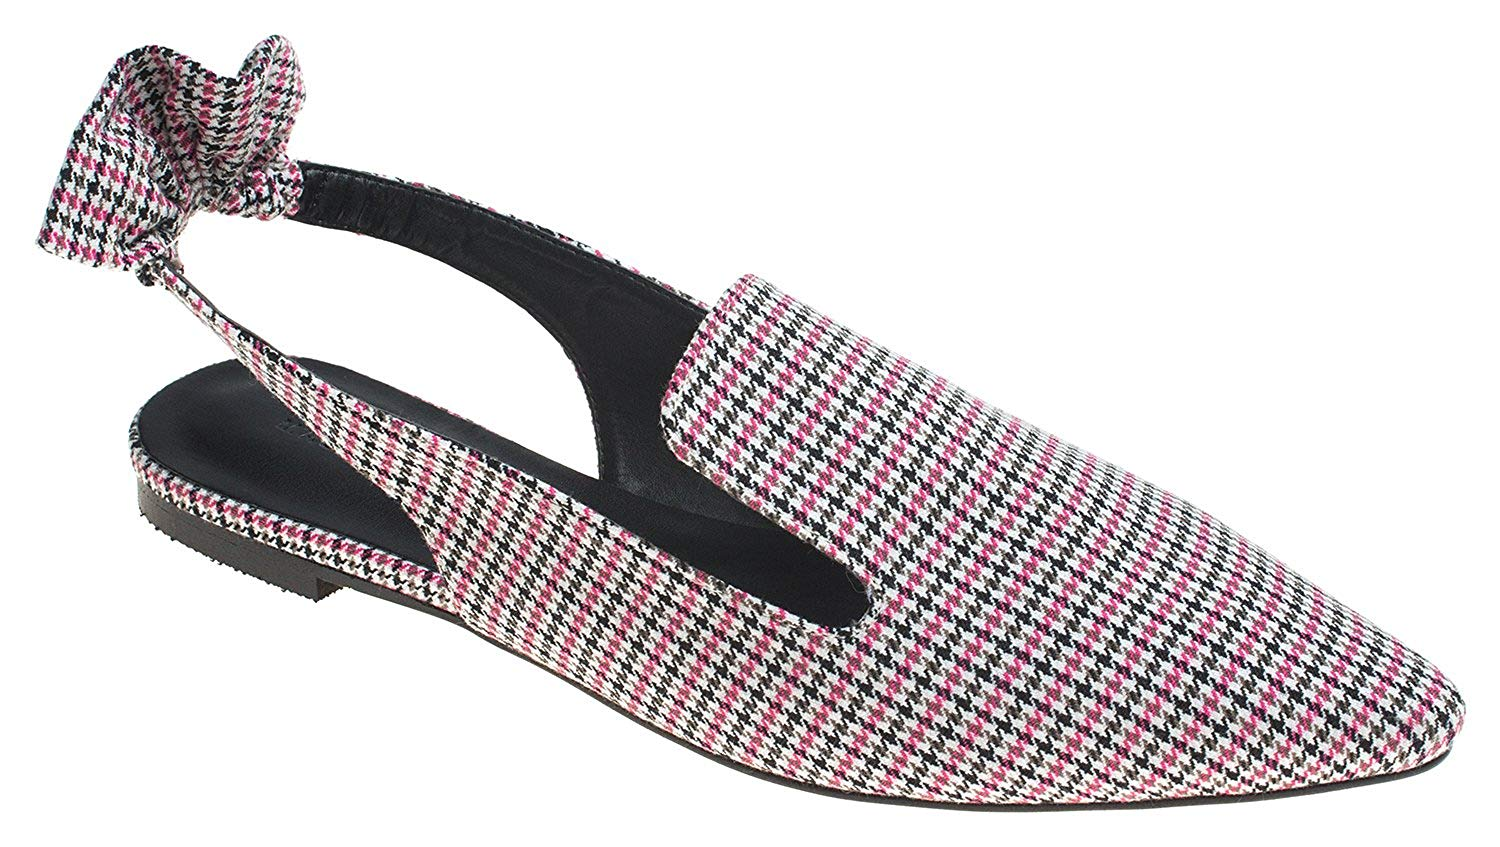 1abf0061067 AnnaKastle Womens Pointy Toe Checked Slingback Loafer with Ruffle Accent